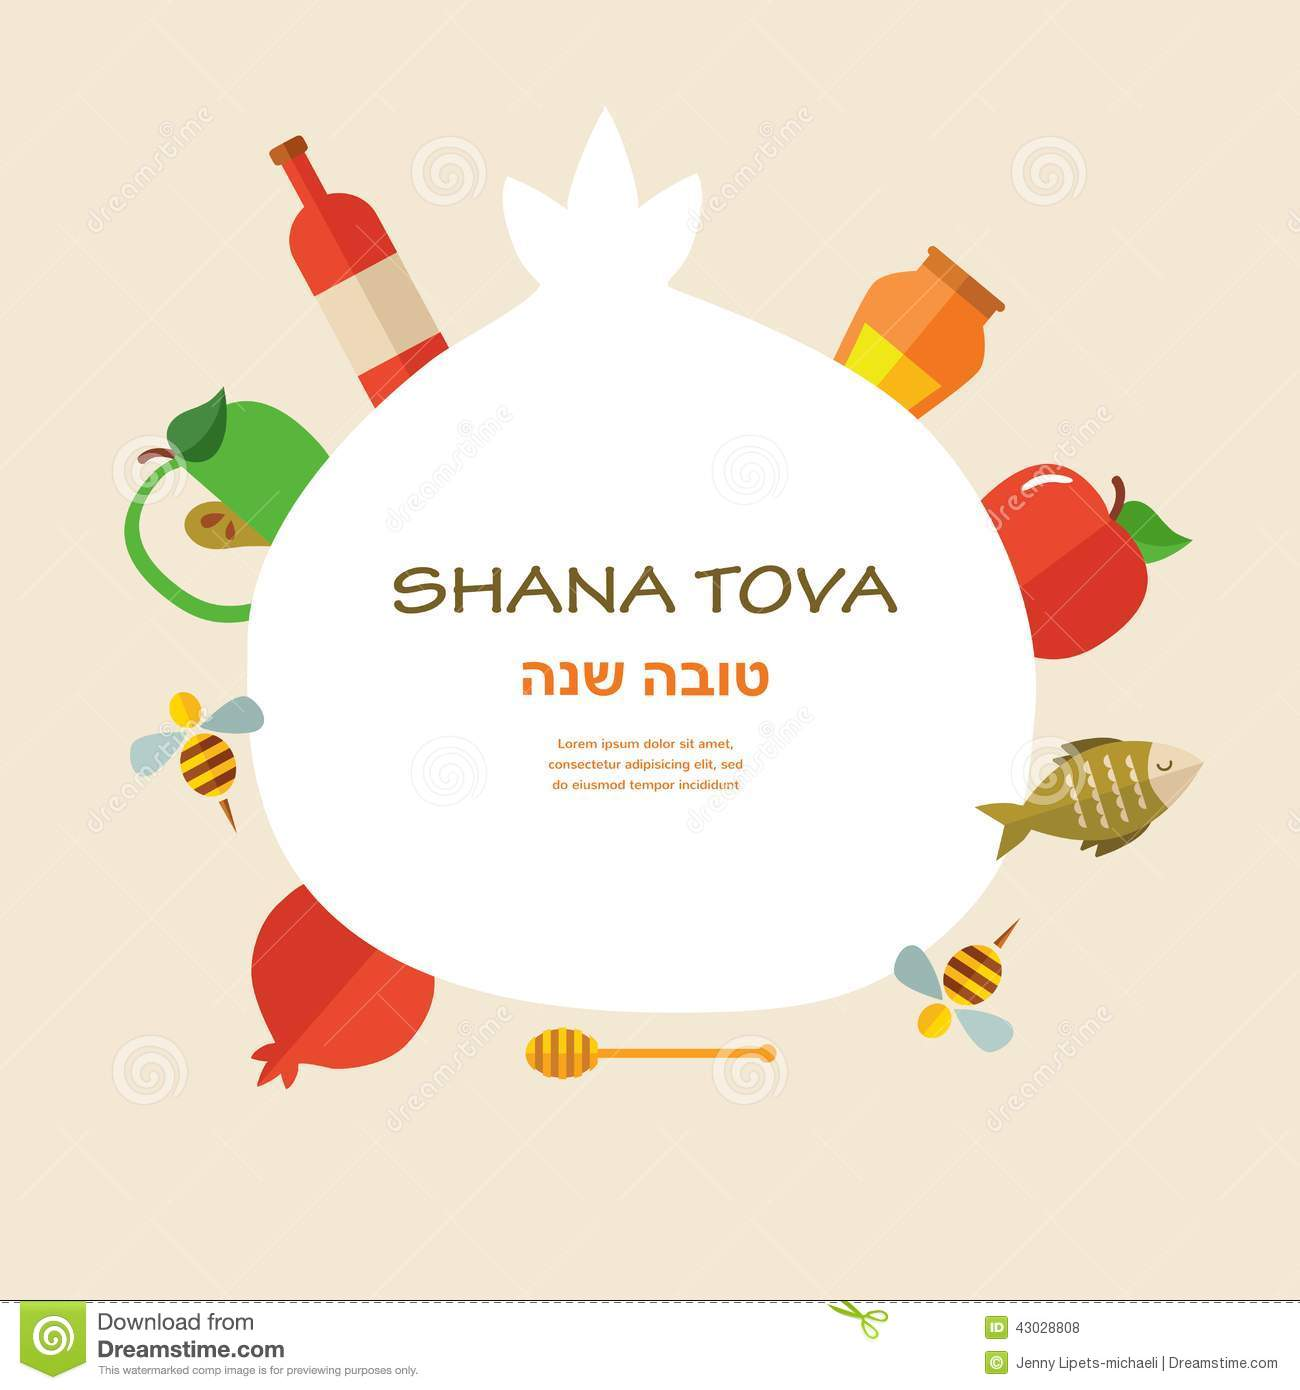 Traditional Rosh Hashanah Greetings